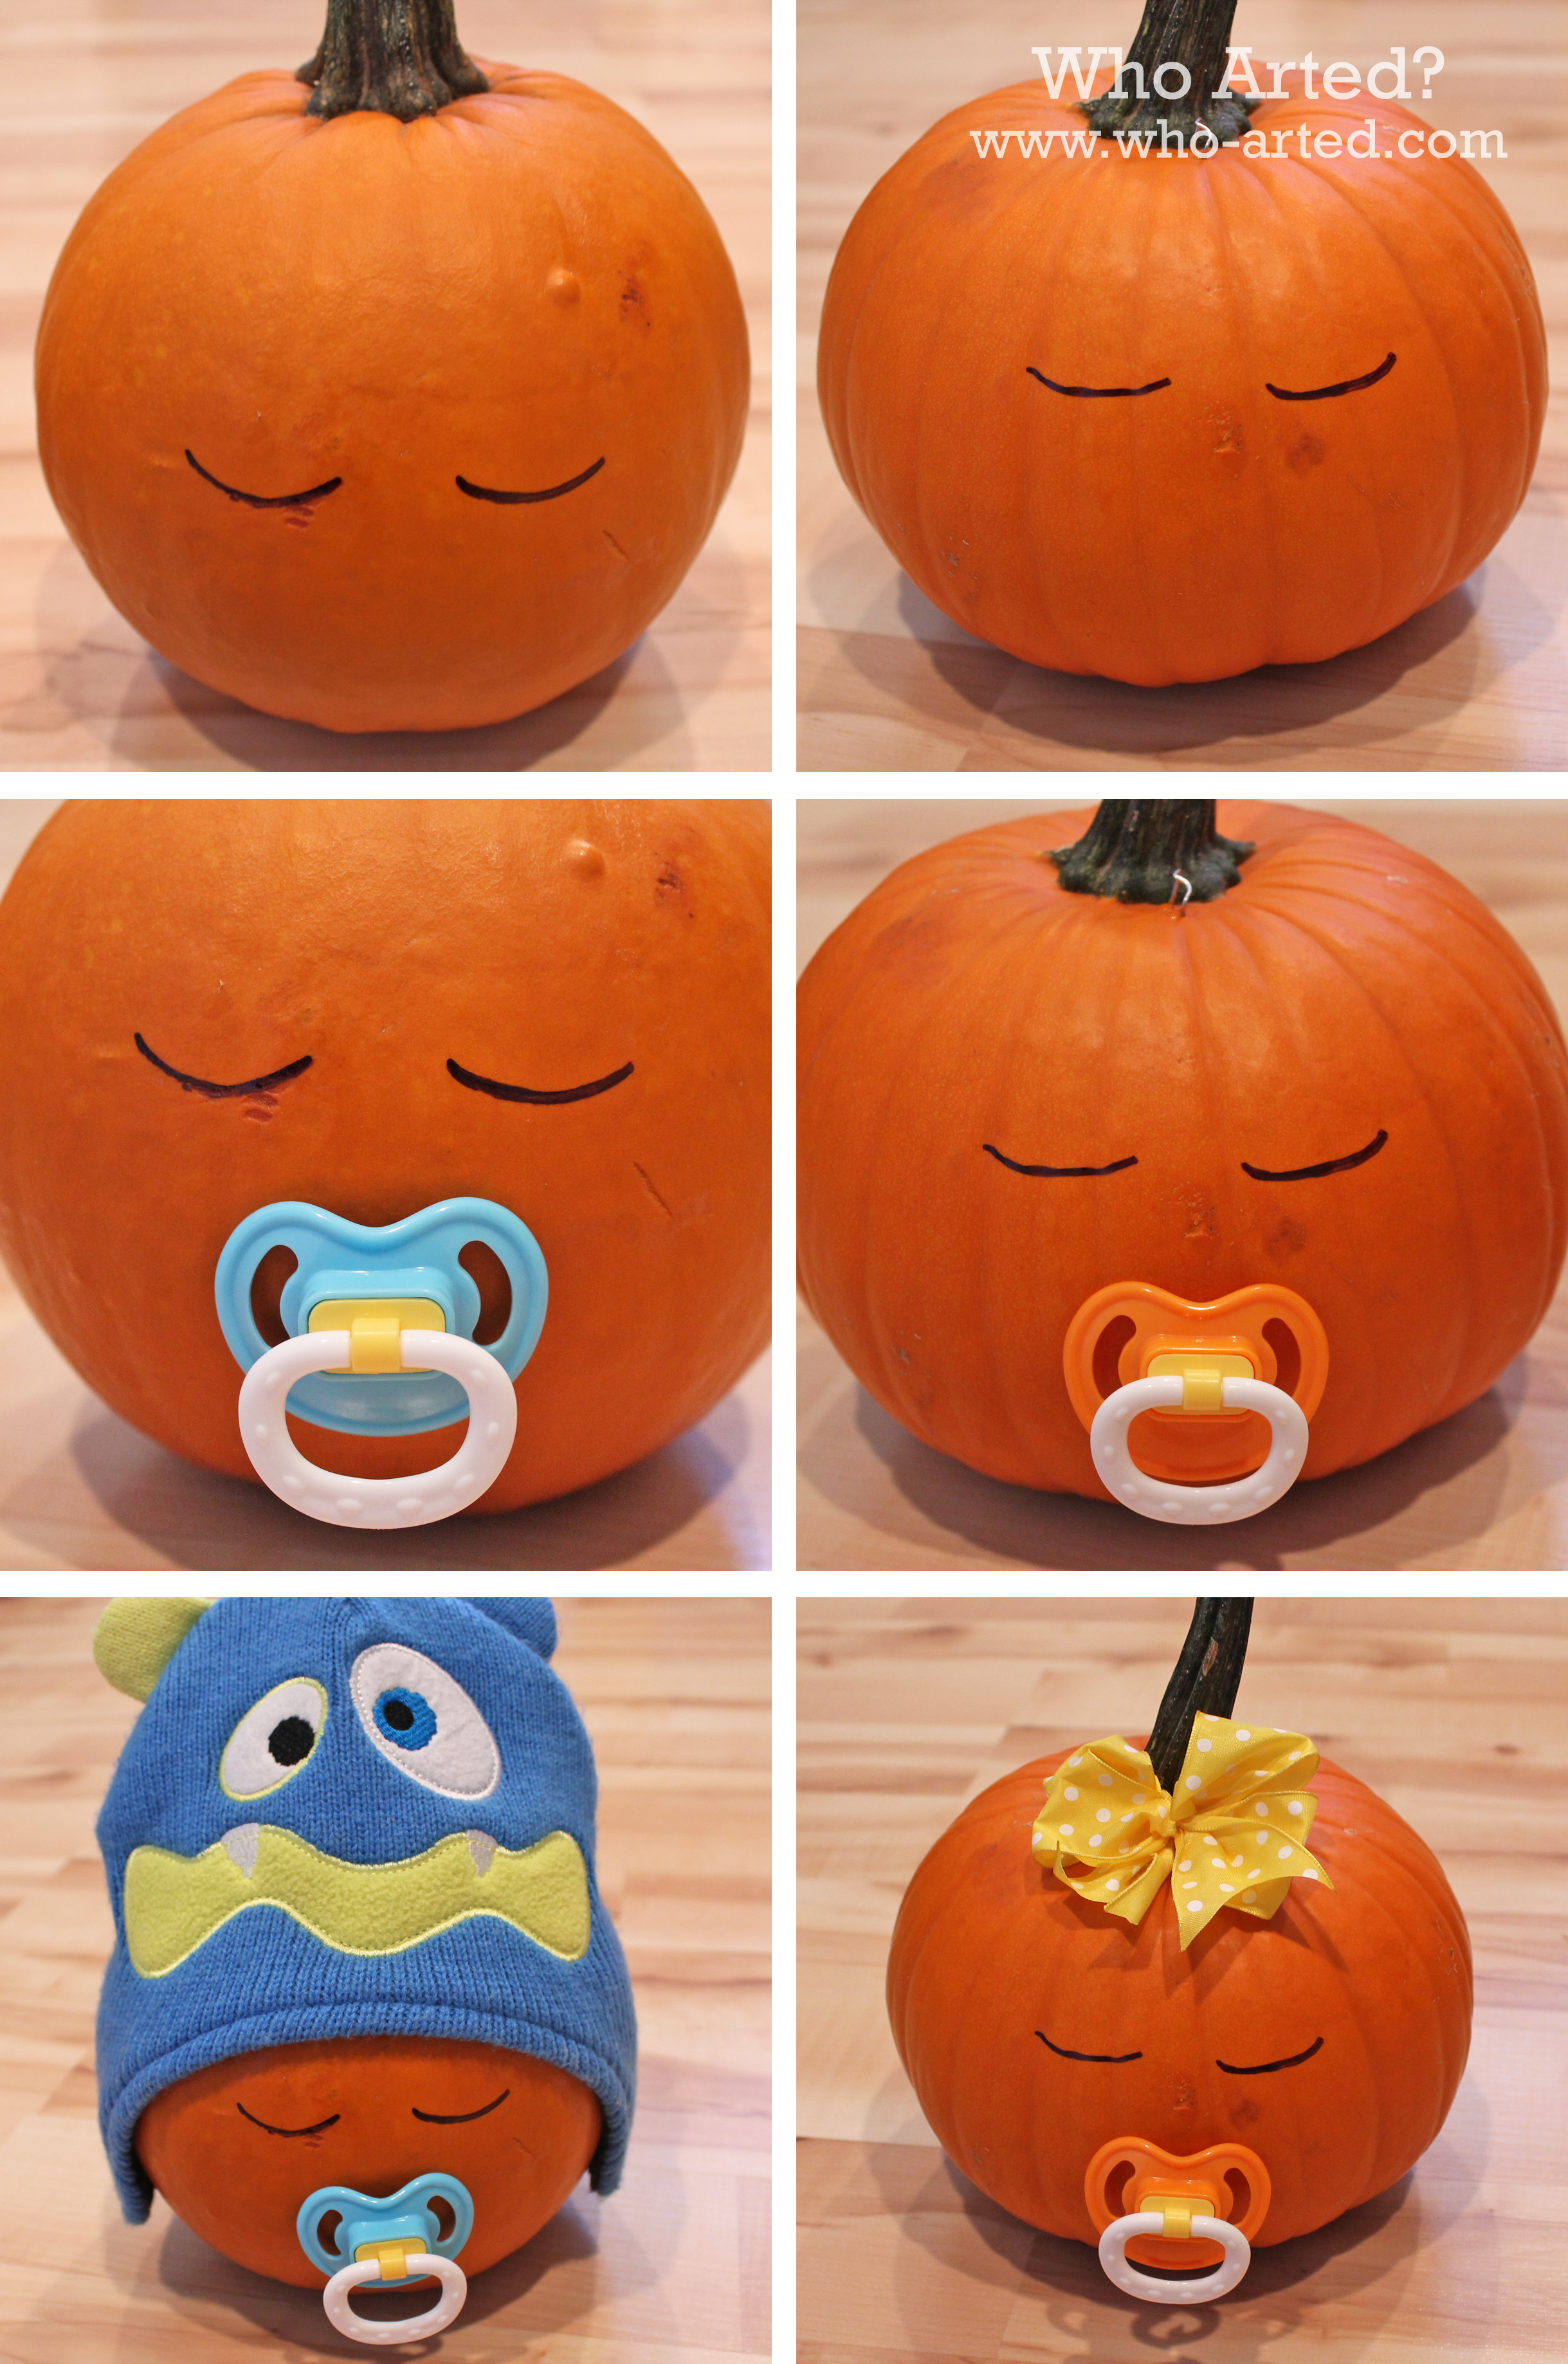 alternatives to carving pumpkins - who arted?